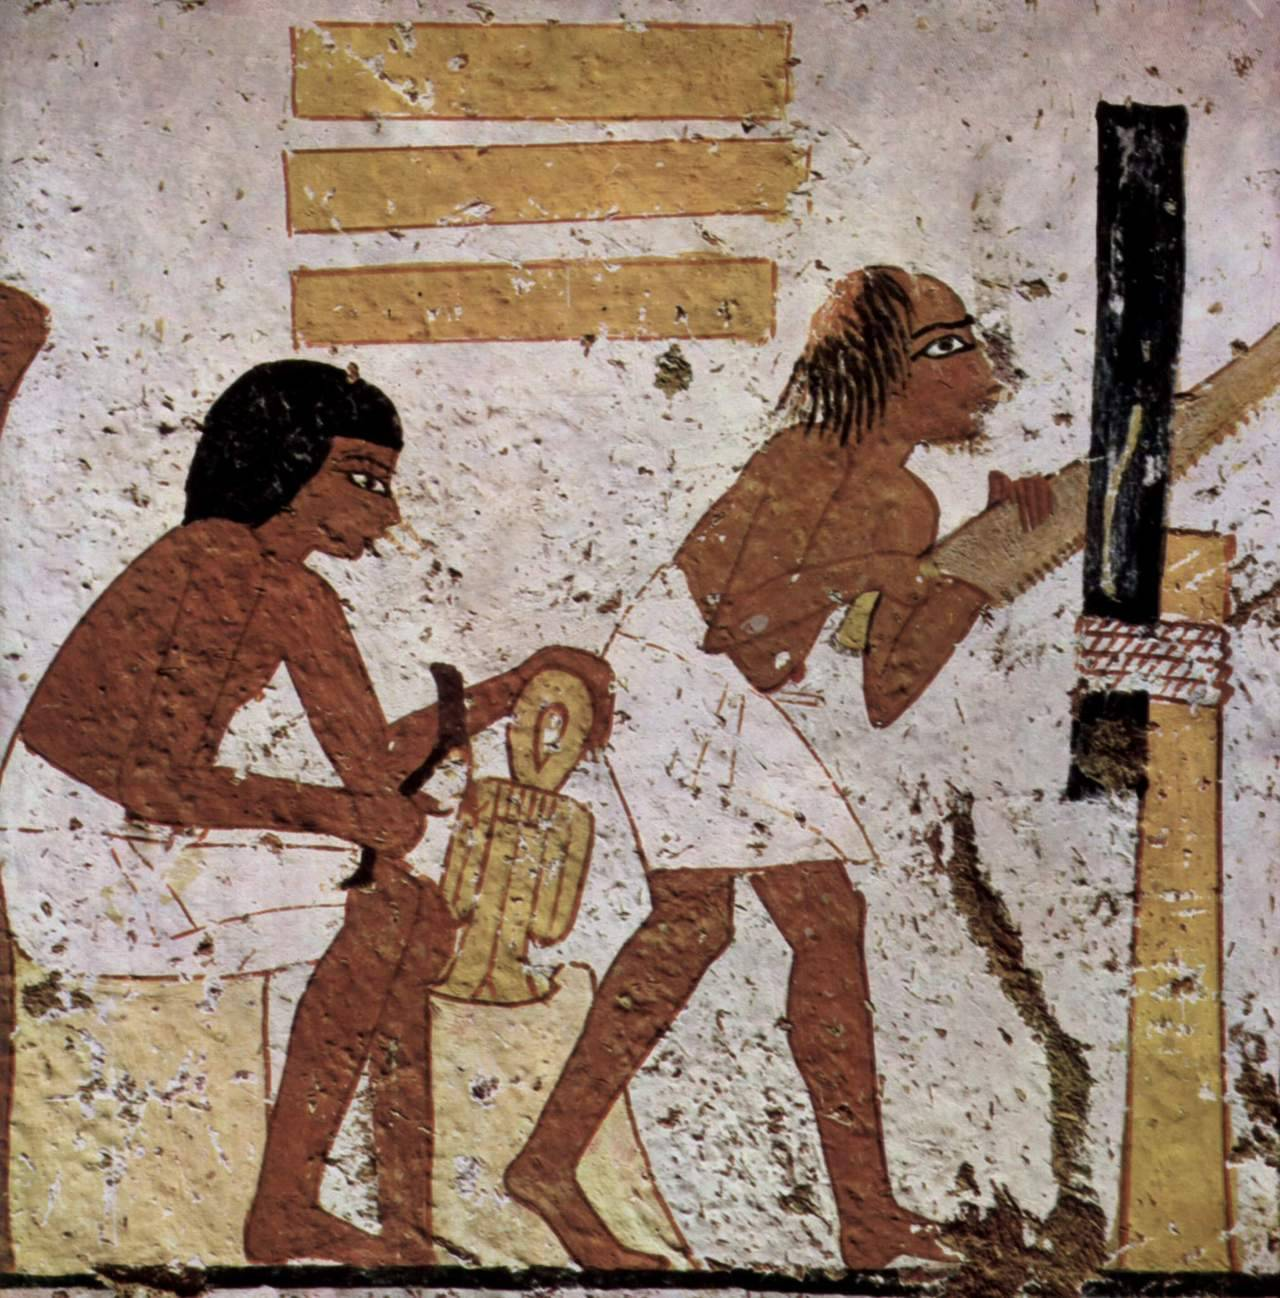 ancientart:  Ancient Egyptian painting of woodworkers, Tomb of Nebamun, c. 1350-1300 BC.